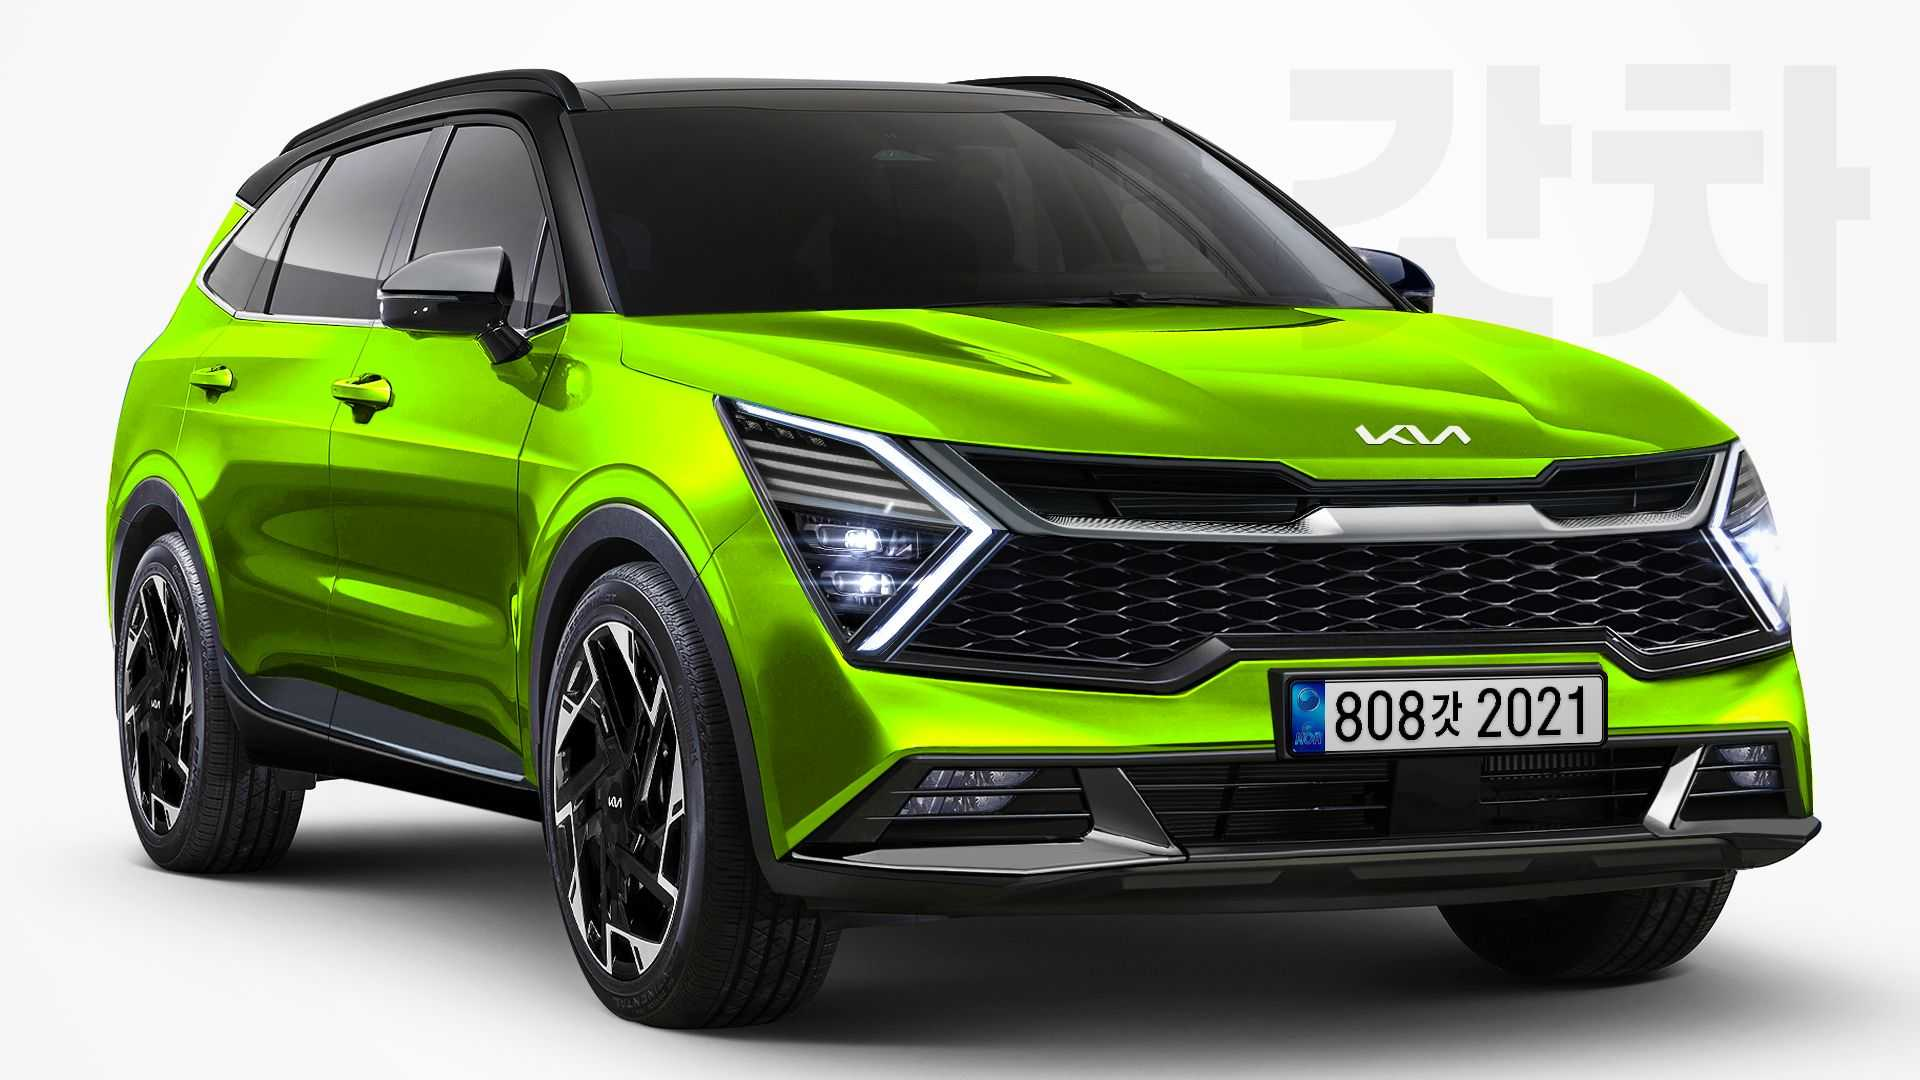 Next-Gen Kia Sportage Speculatively Rendered From Latest Spy Shots